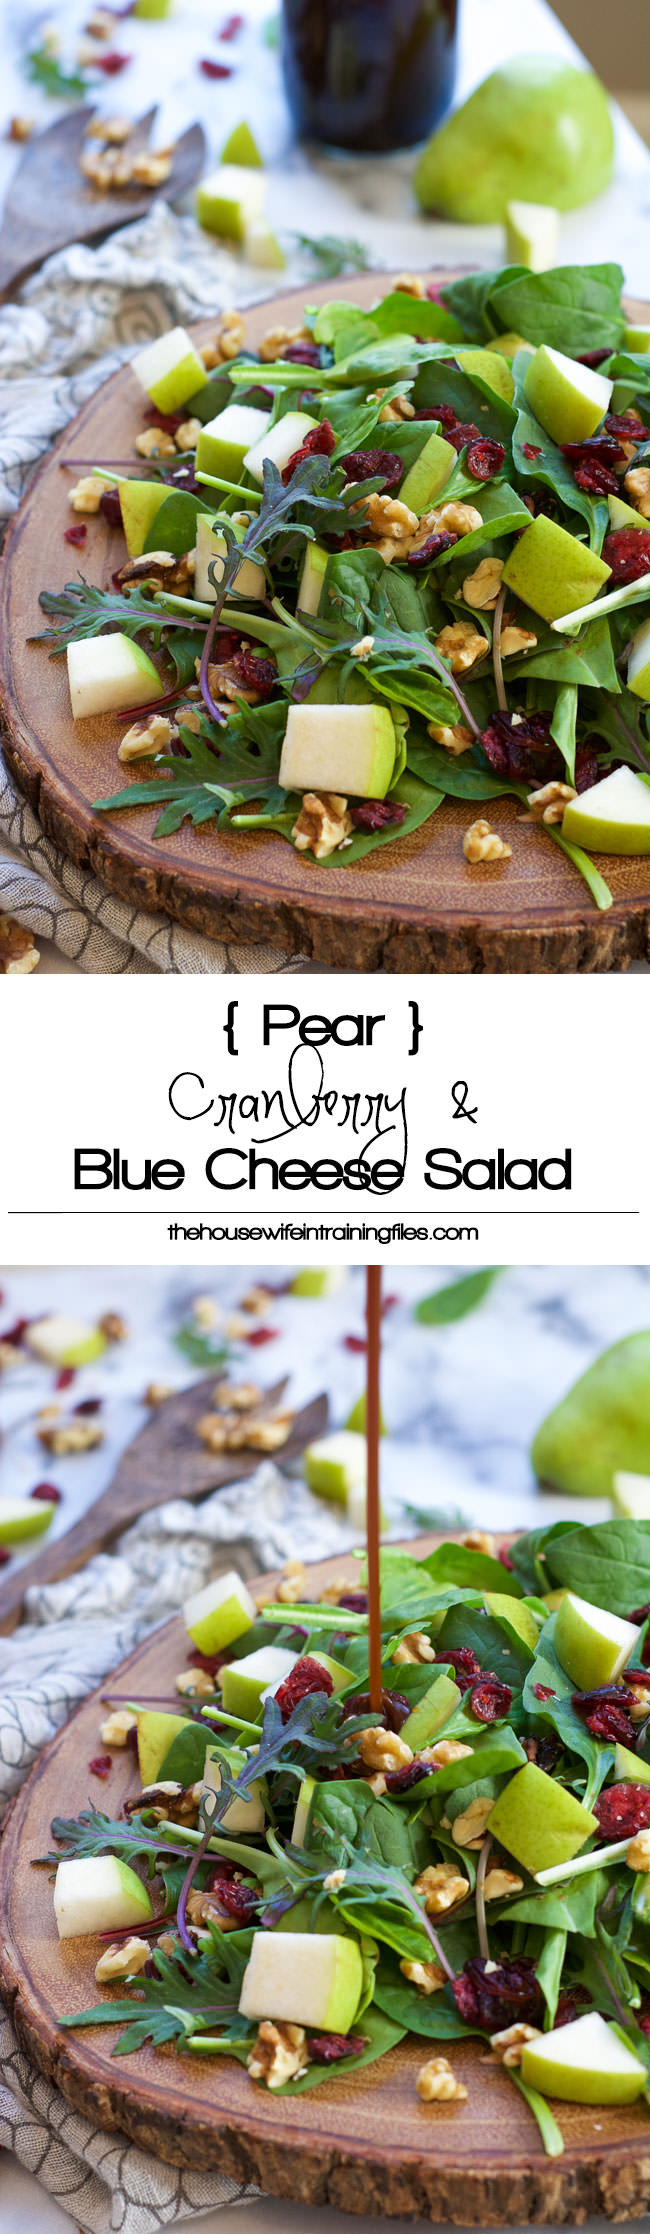 Cranberry Spinach Salad Recipe Food Network